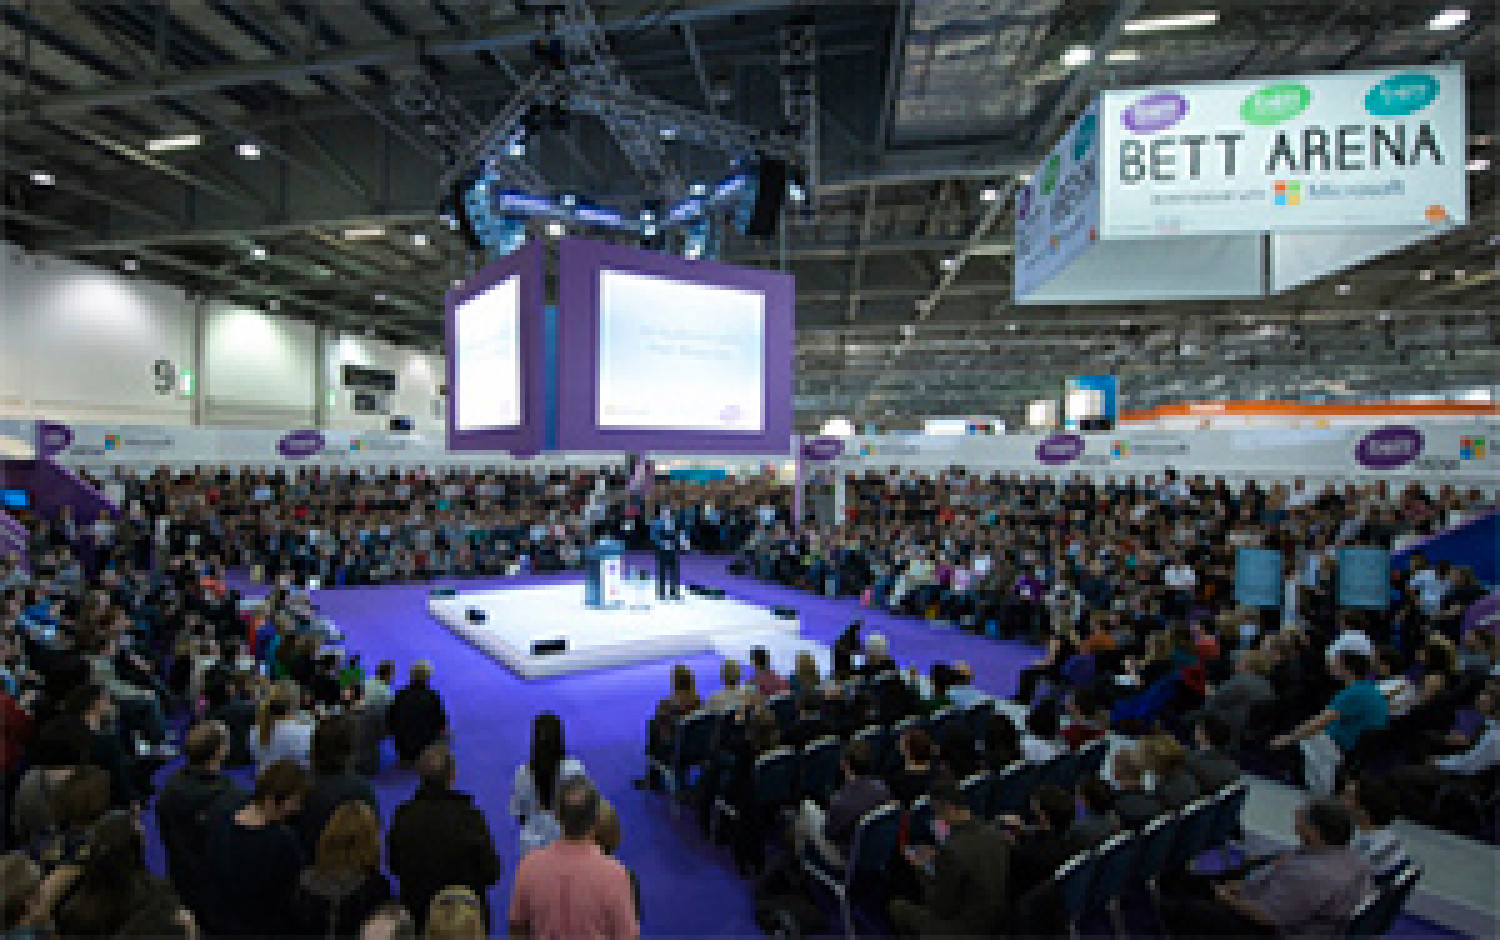 THE WINNERS TAKE A STAND AGAIN: GENEE @BETT SHOW 2014 Infographic